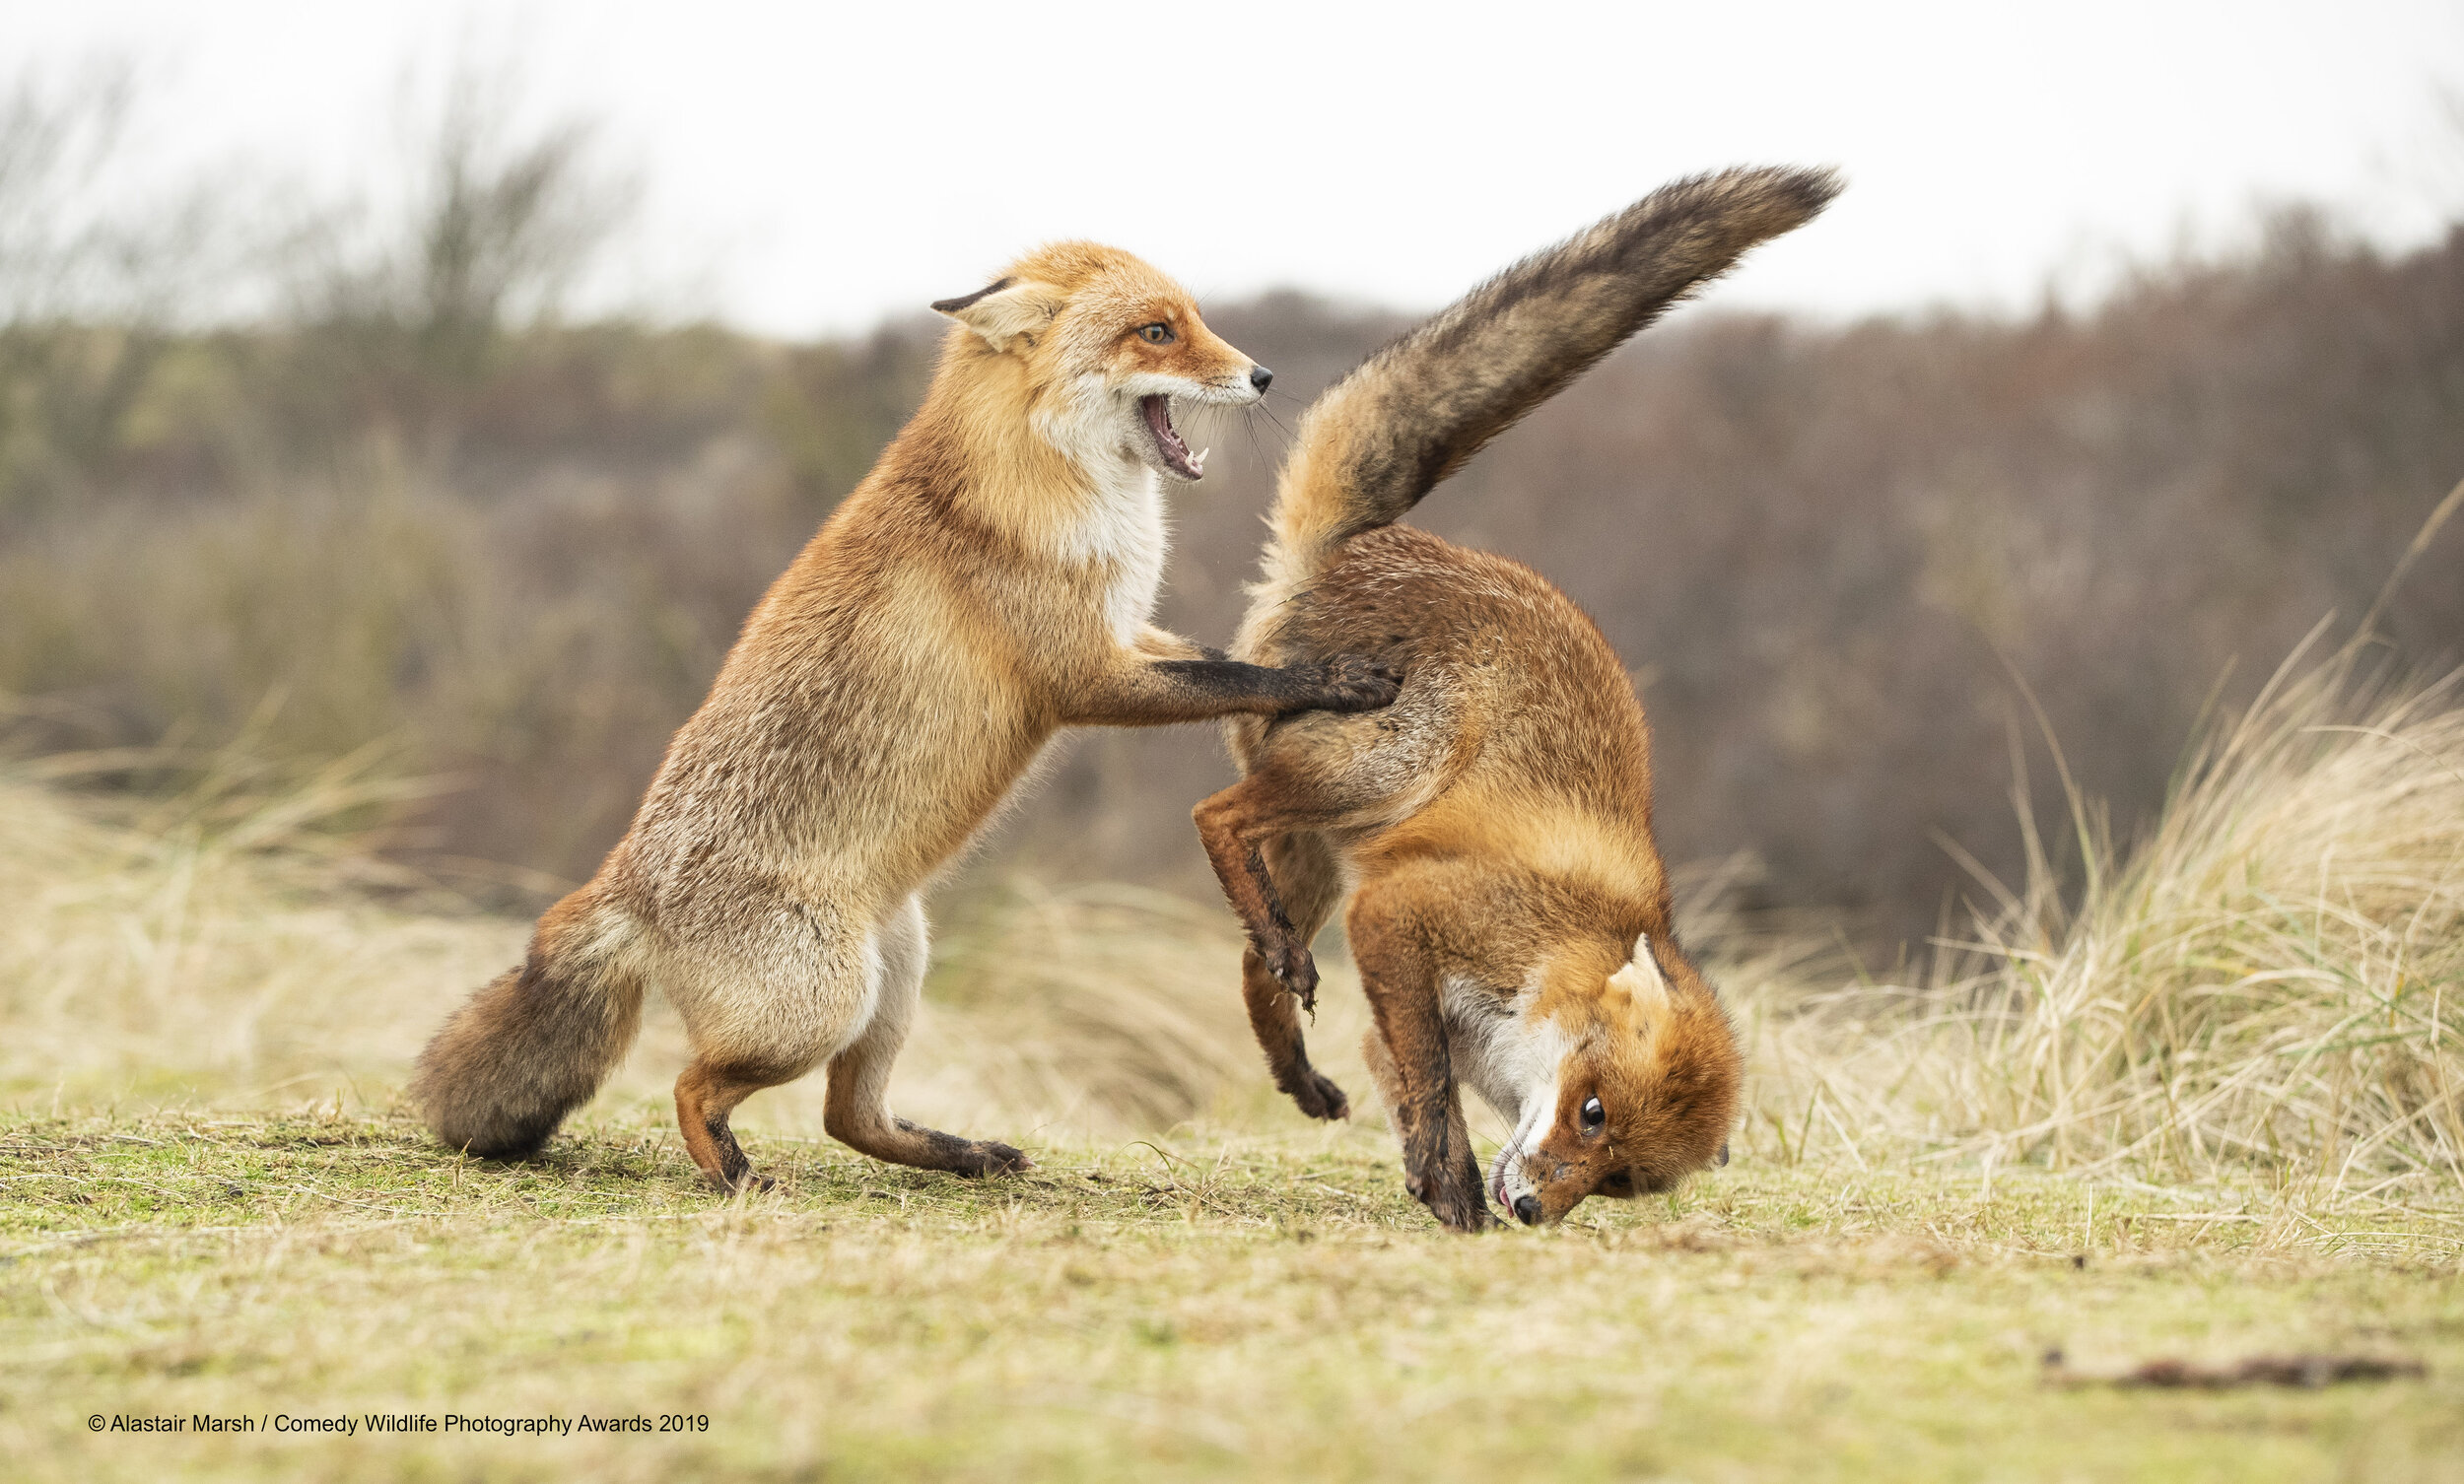 'Waltz Gone Wrong' by Alistair Marsh ©. Courtesy of Comedy Wildlife Photography Awards.